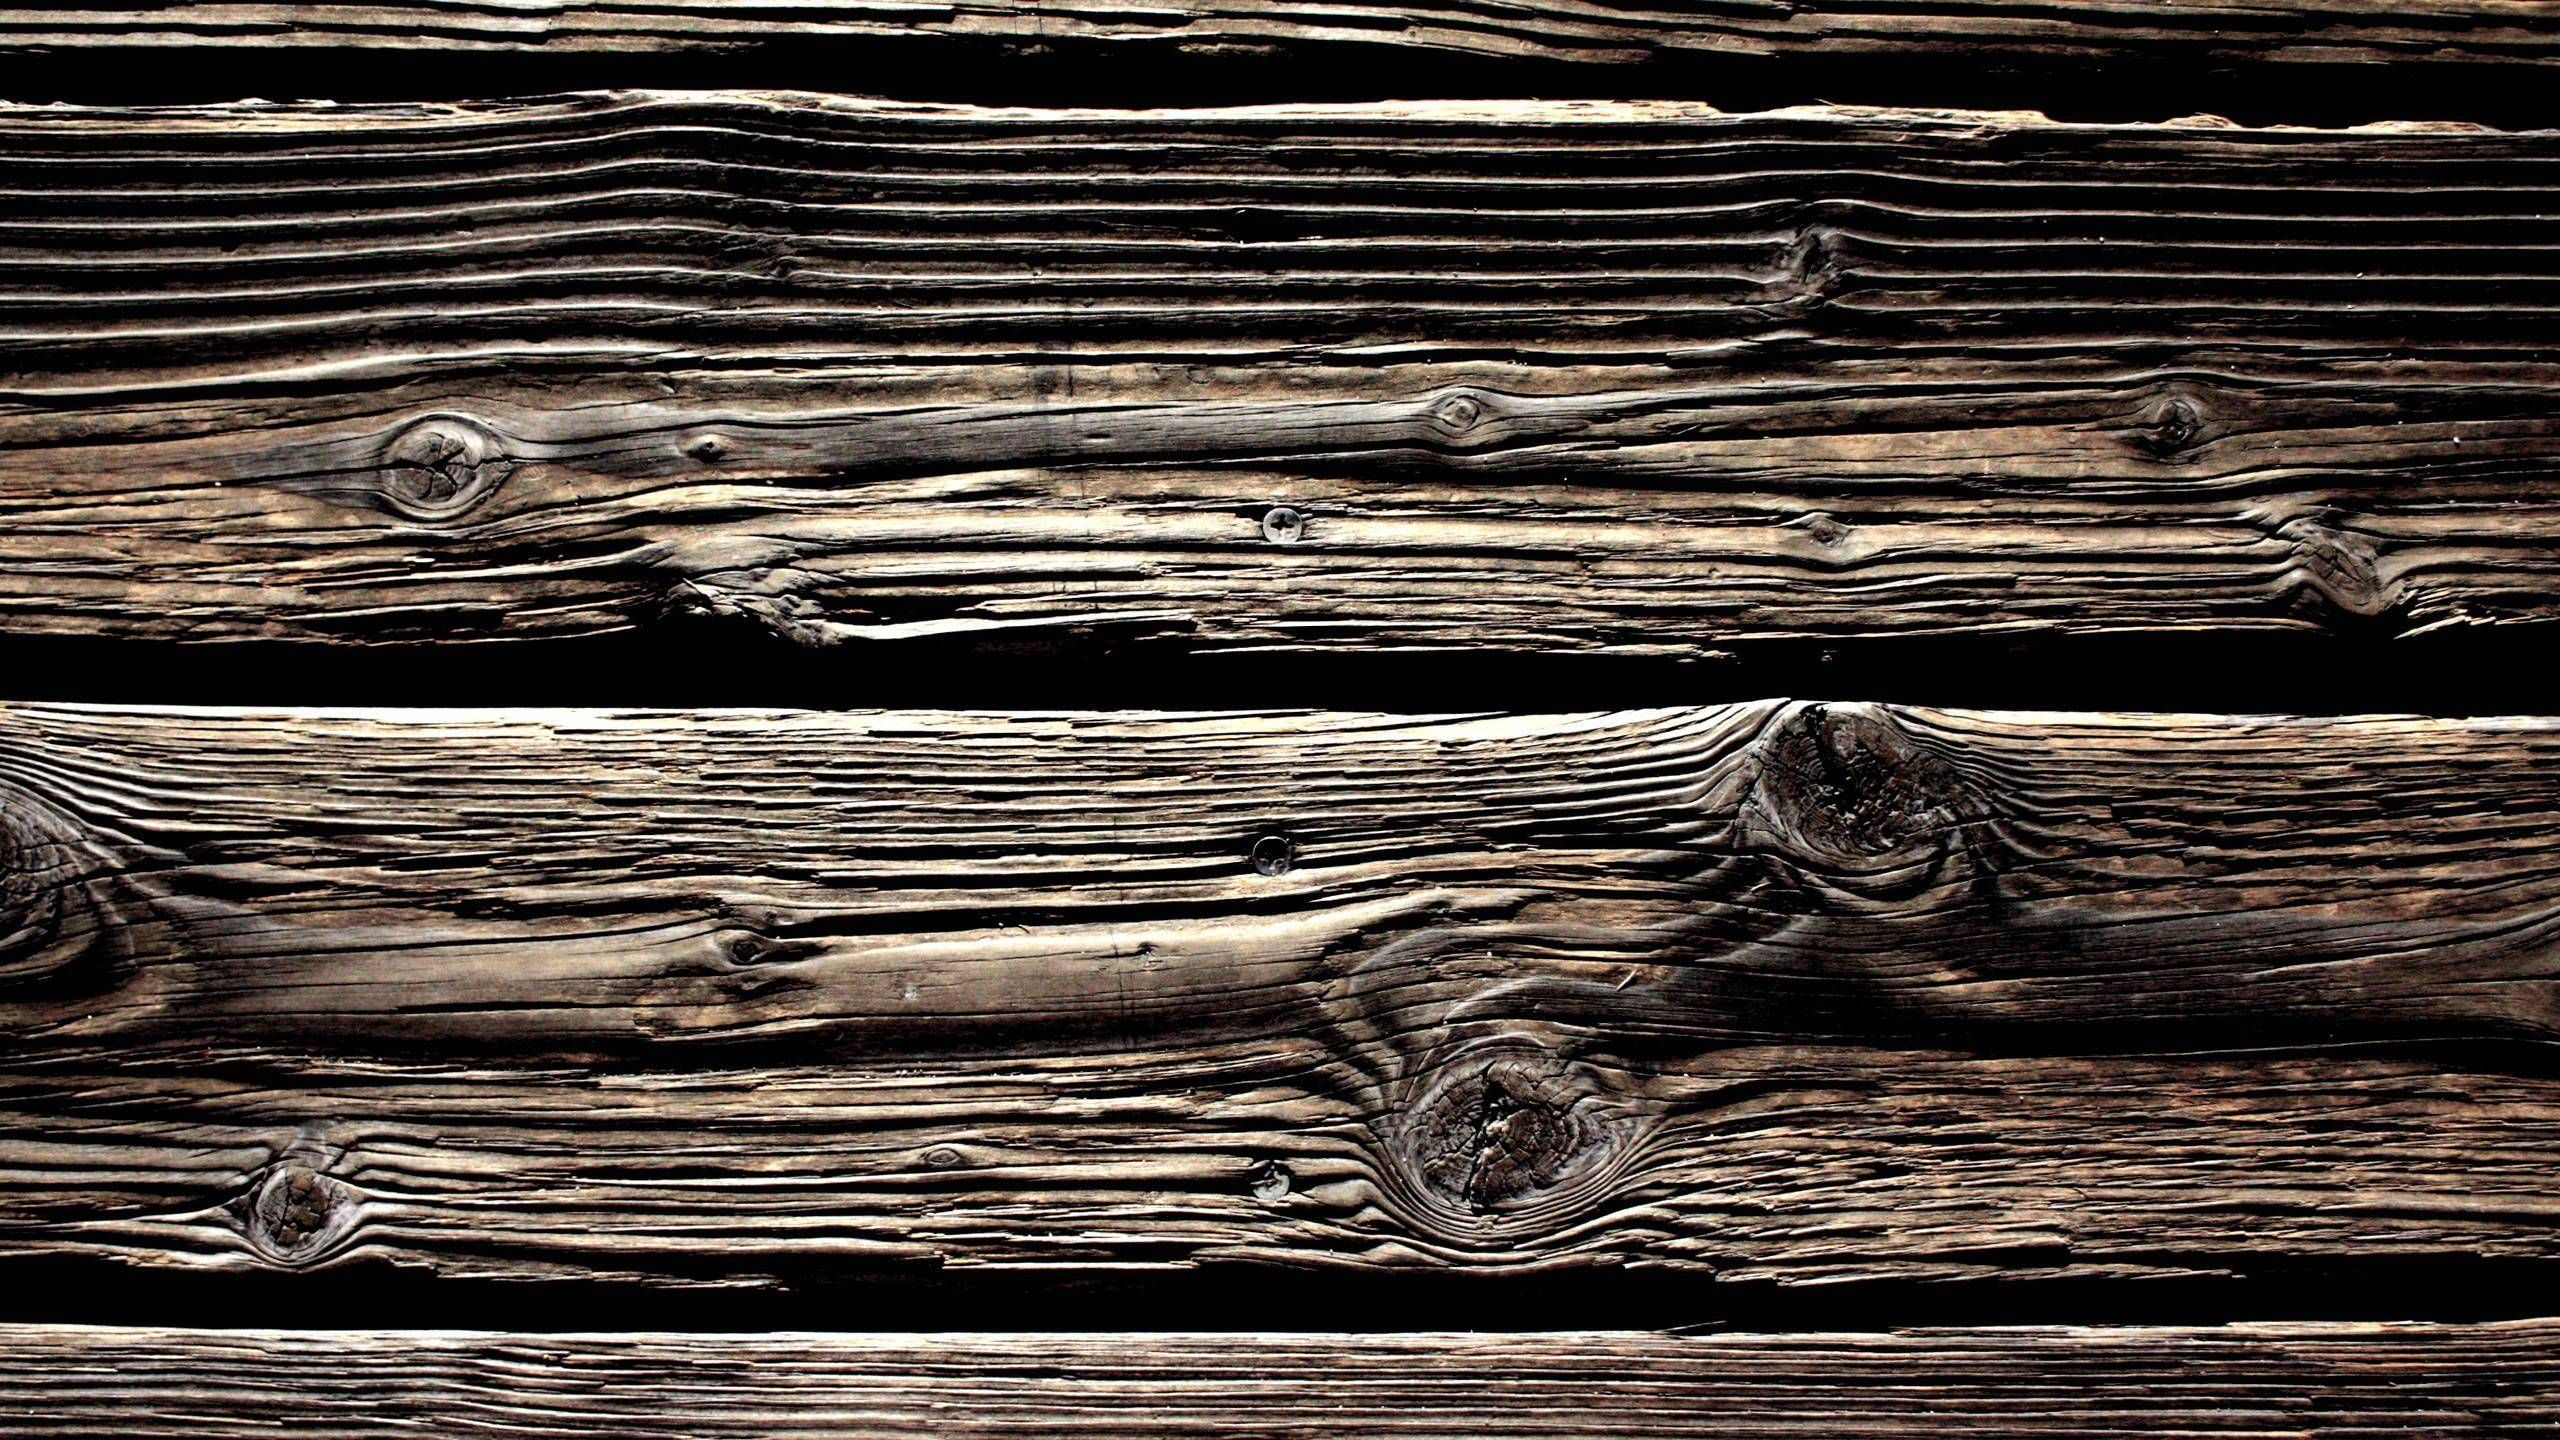 Wood Hd Wallpapers Backgrounds Wallpaper 2560 1440 Hd Wood Backgrounds 26 Wallpapers Adorable Wallpapers Wood Wallpaper Wood Rustic Wallpaper